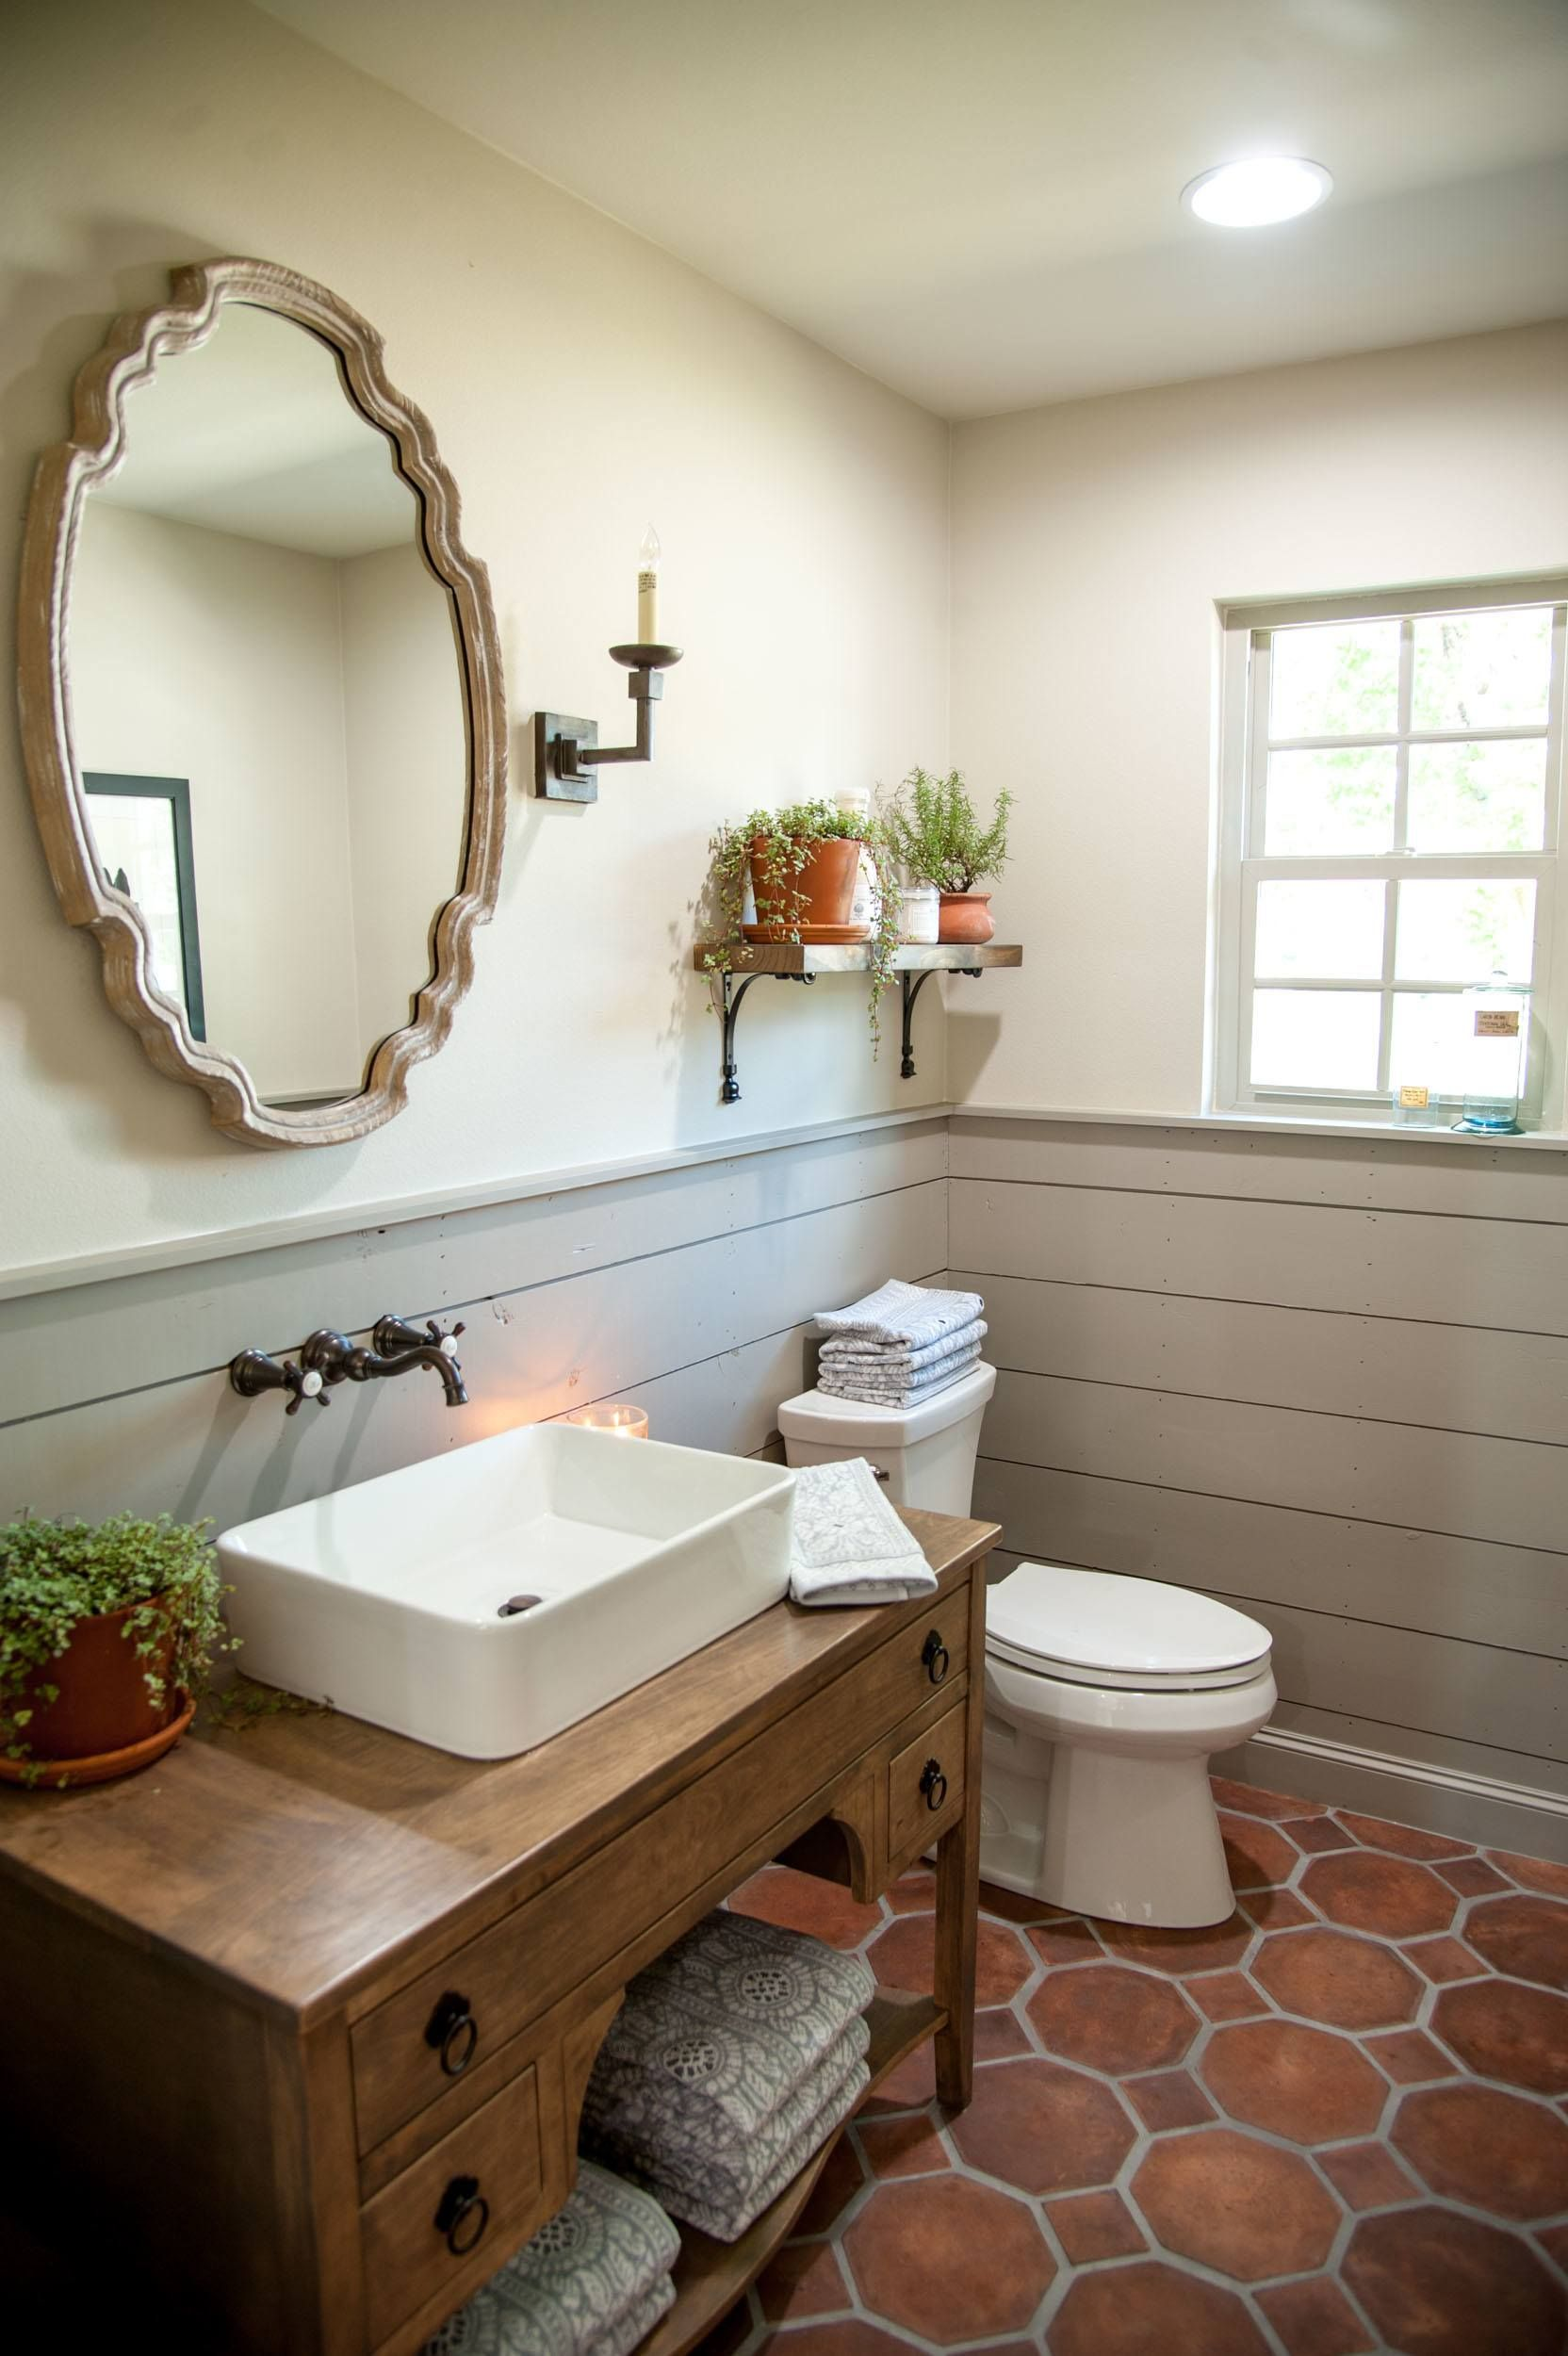 Gray Shiplap Wainscoting Added Dimension To This Powder Room Without Overwhelming The Small Space